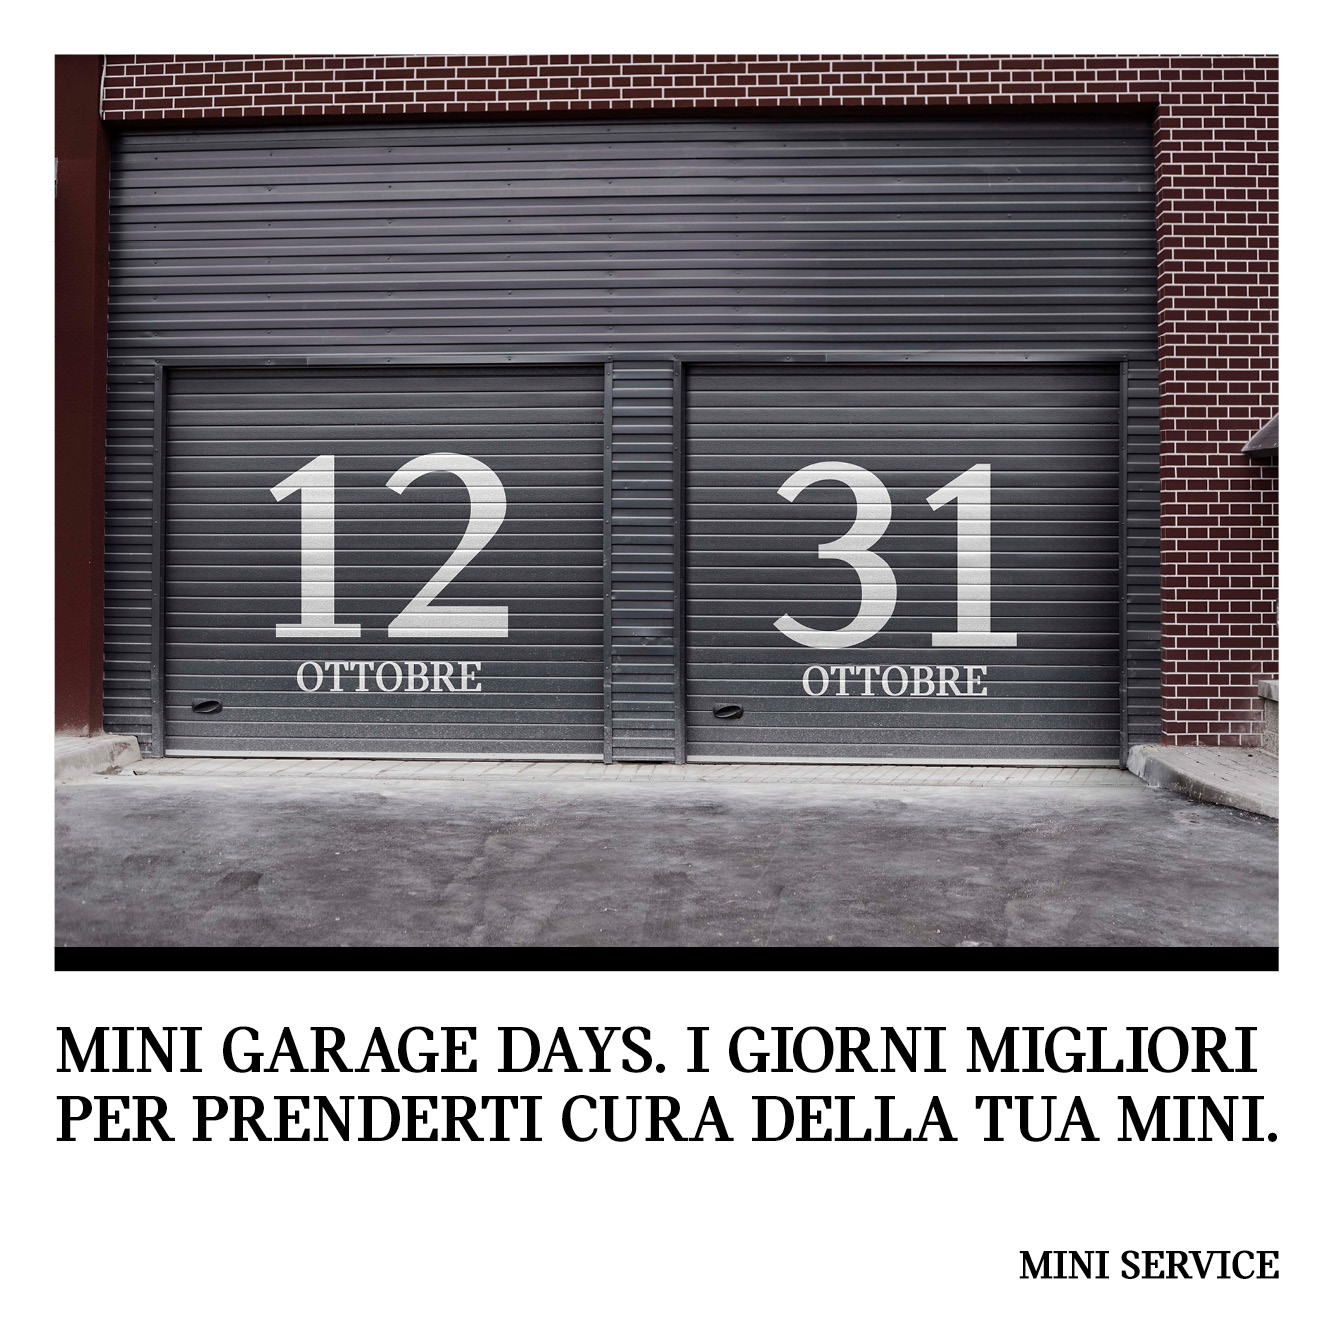 MINI GARAGE DAYS 2020